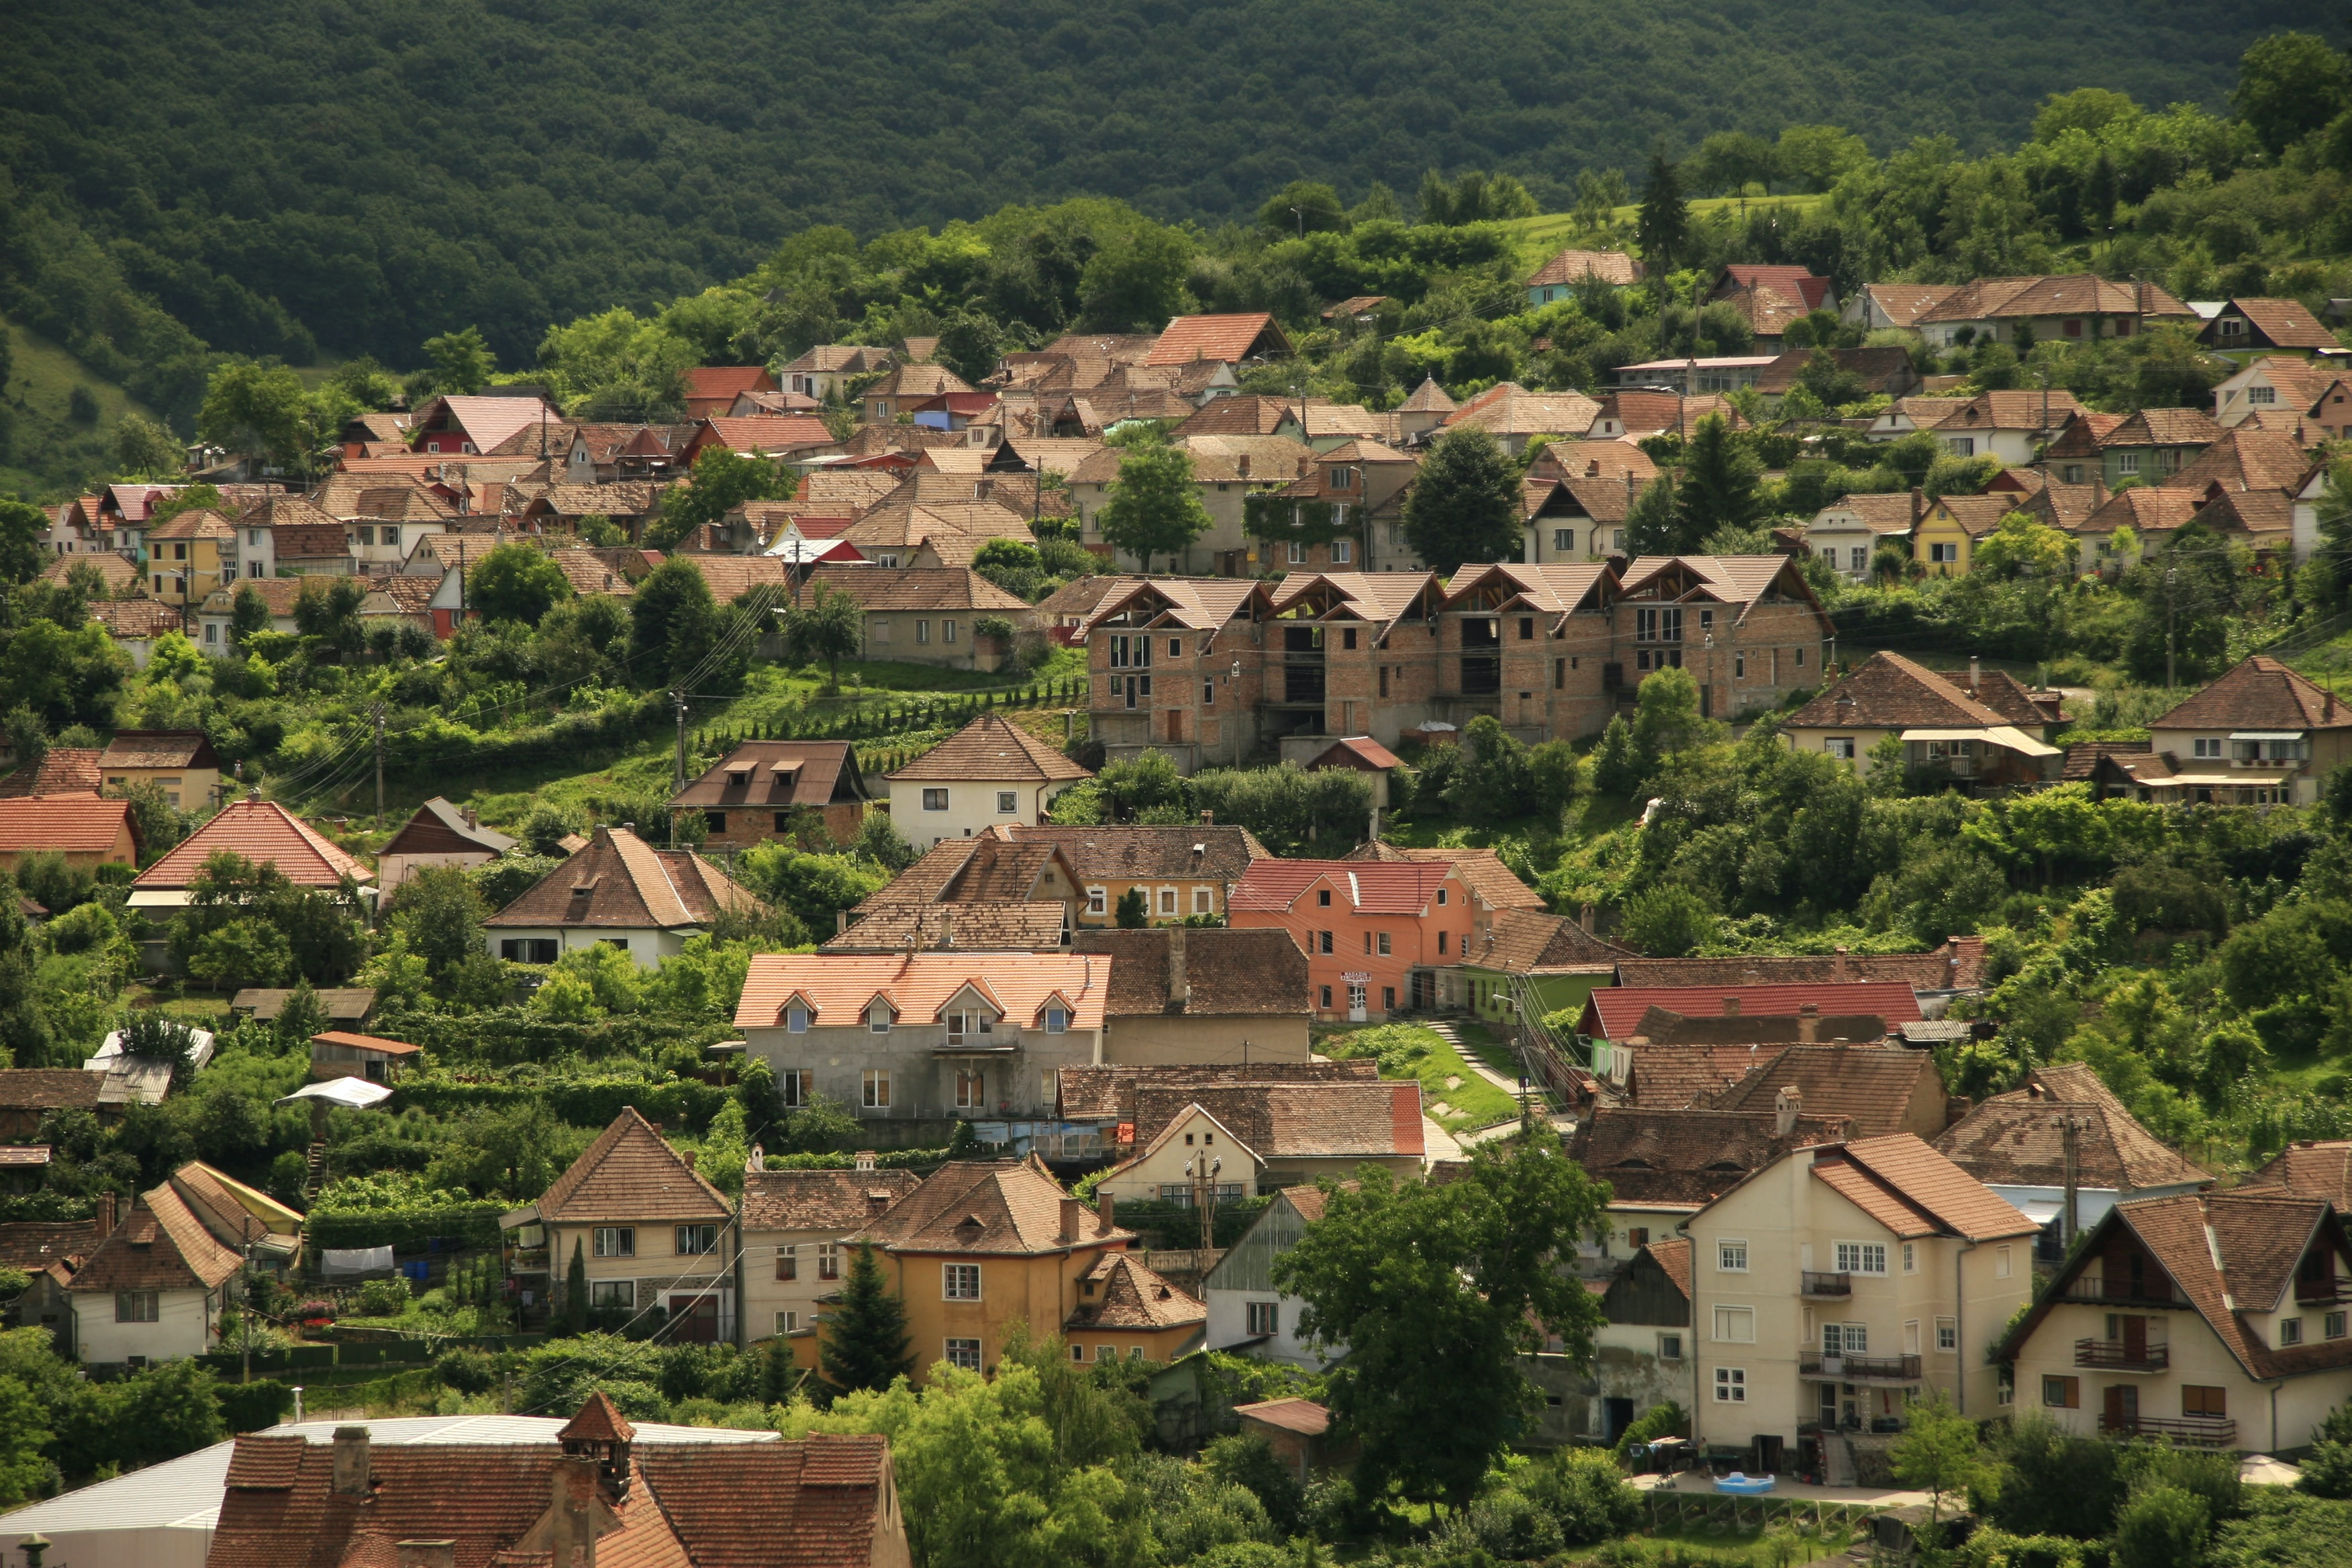 Village houses built up the slope of a forested hill